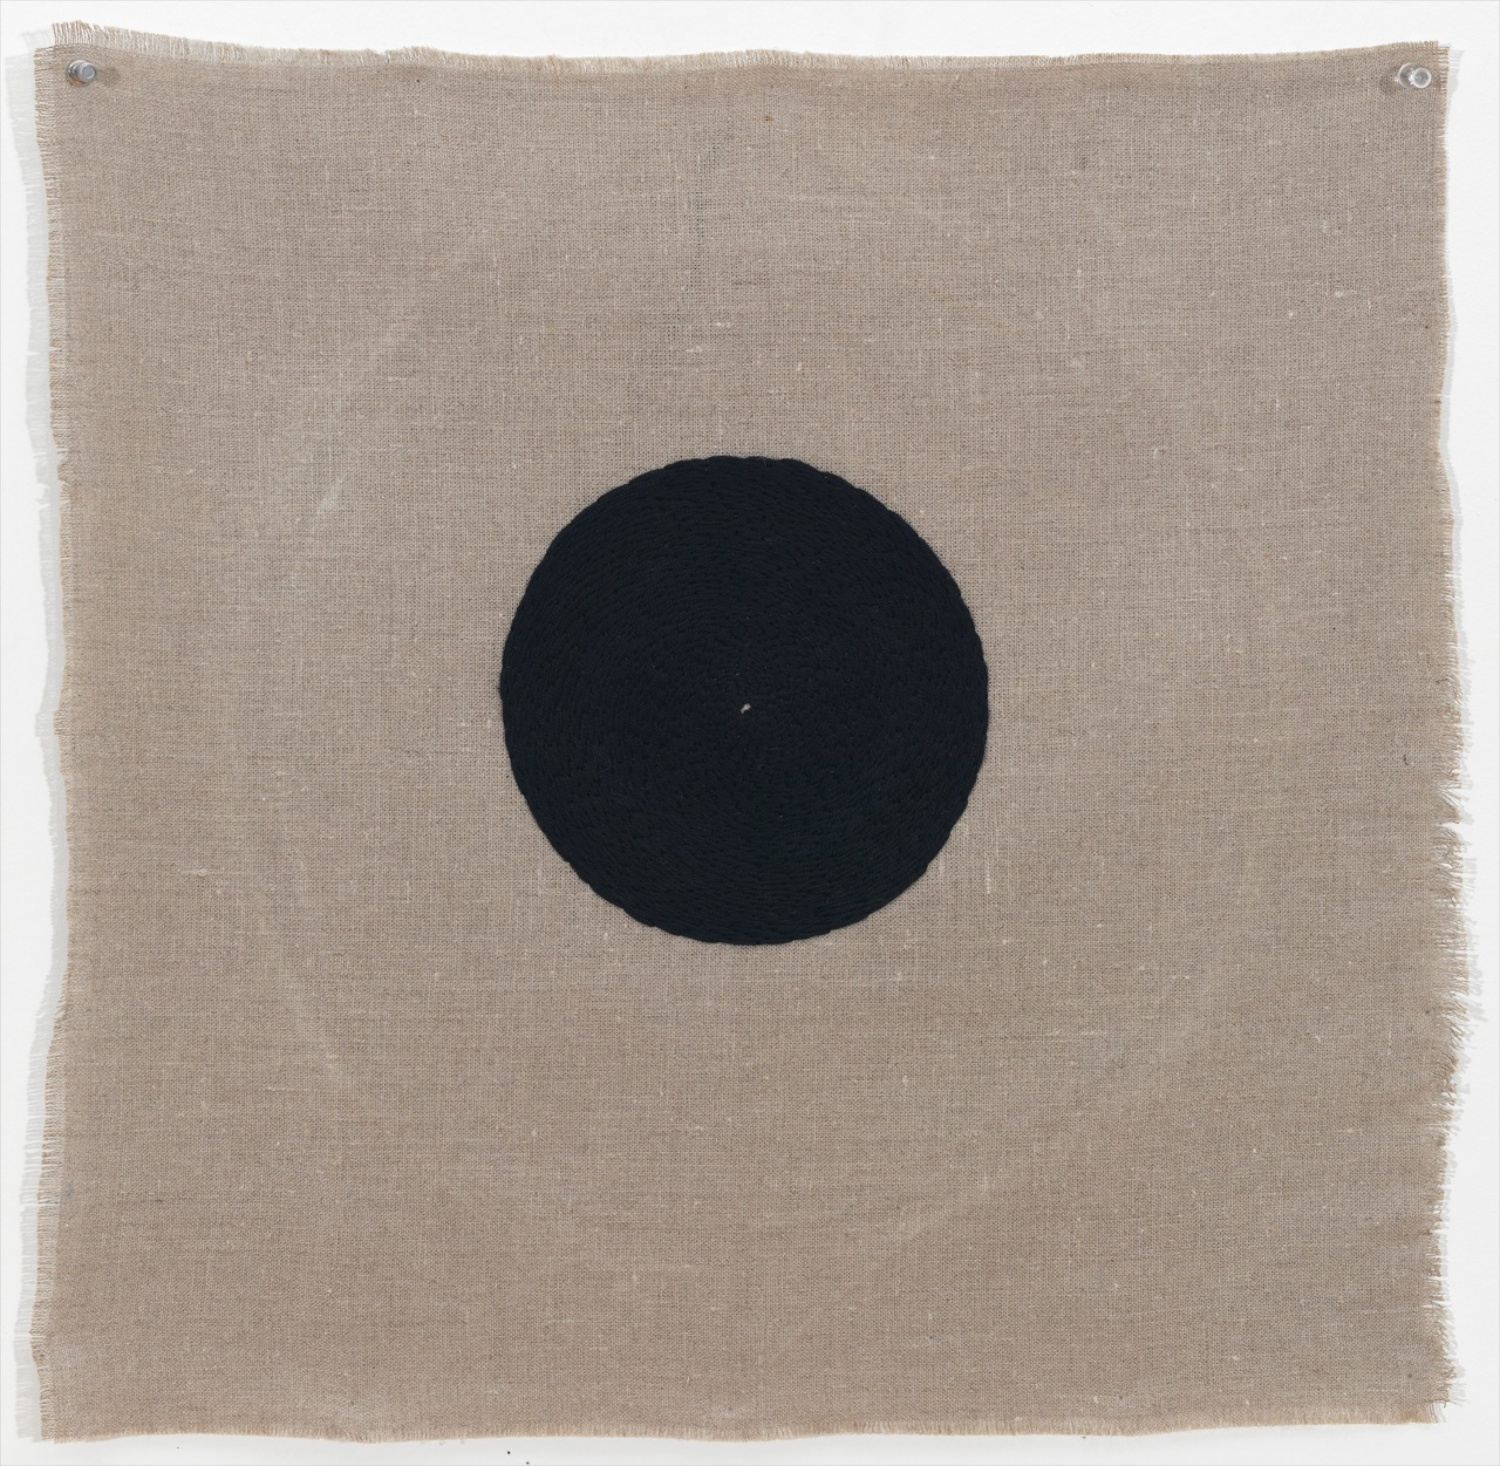 Michelle Grabner  Untitled  2012 Embroidery thread on linen 24h x 26w in MGrab292